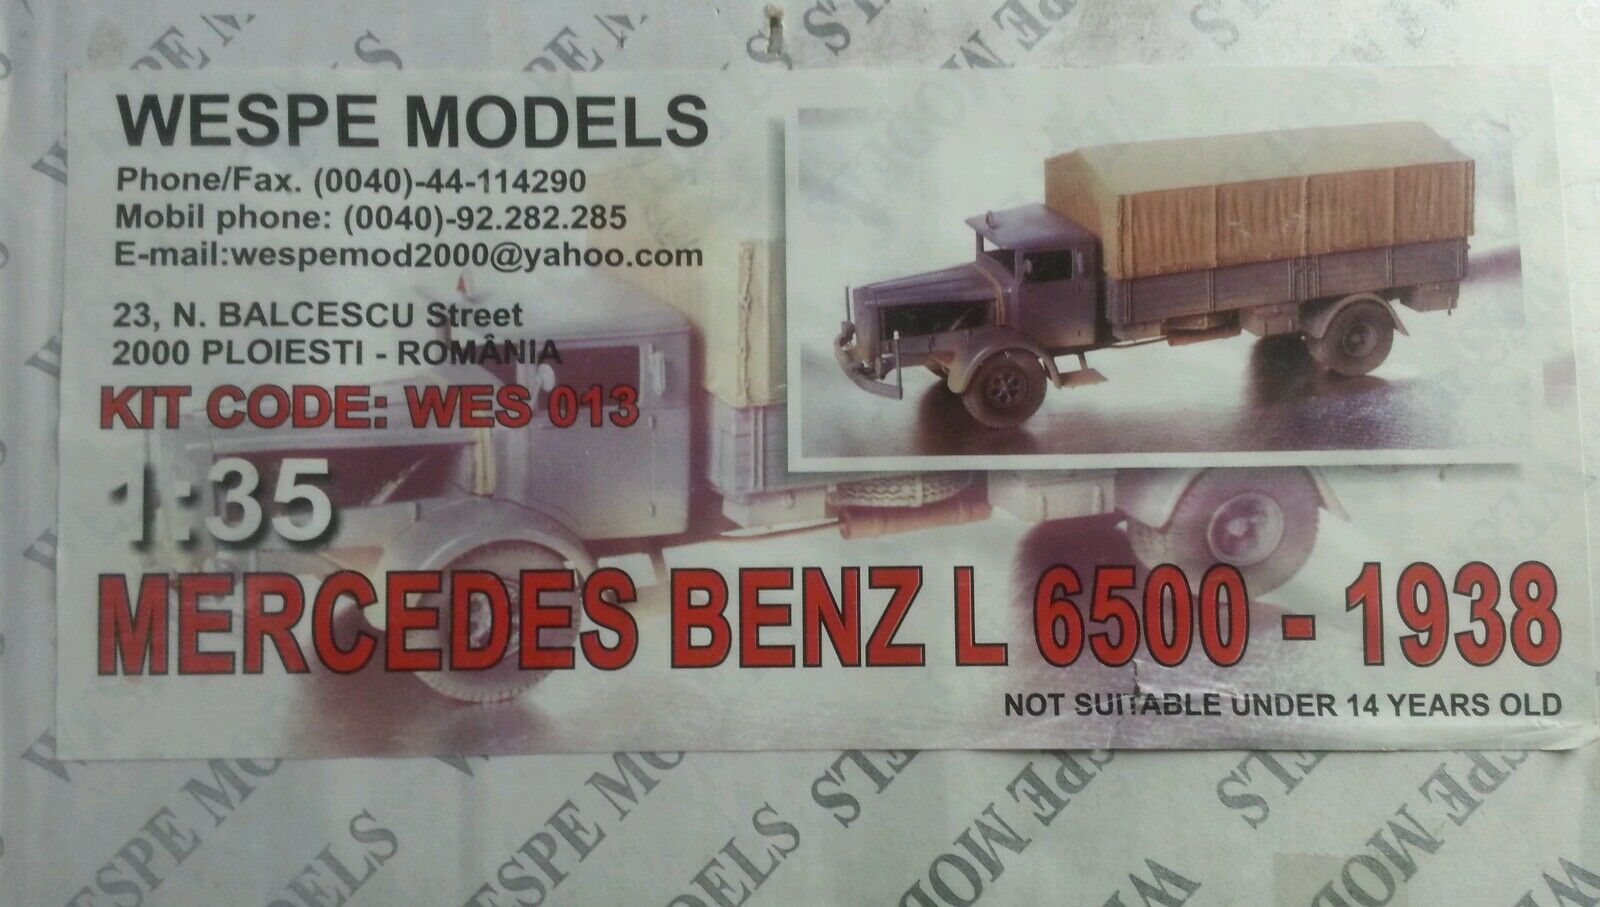 1 35 Wespe models mercedes benz l6500-1938